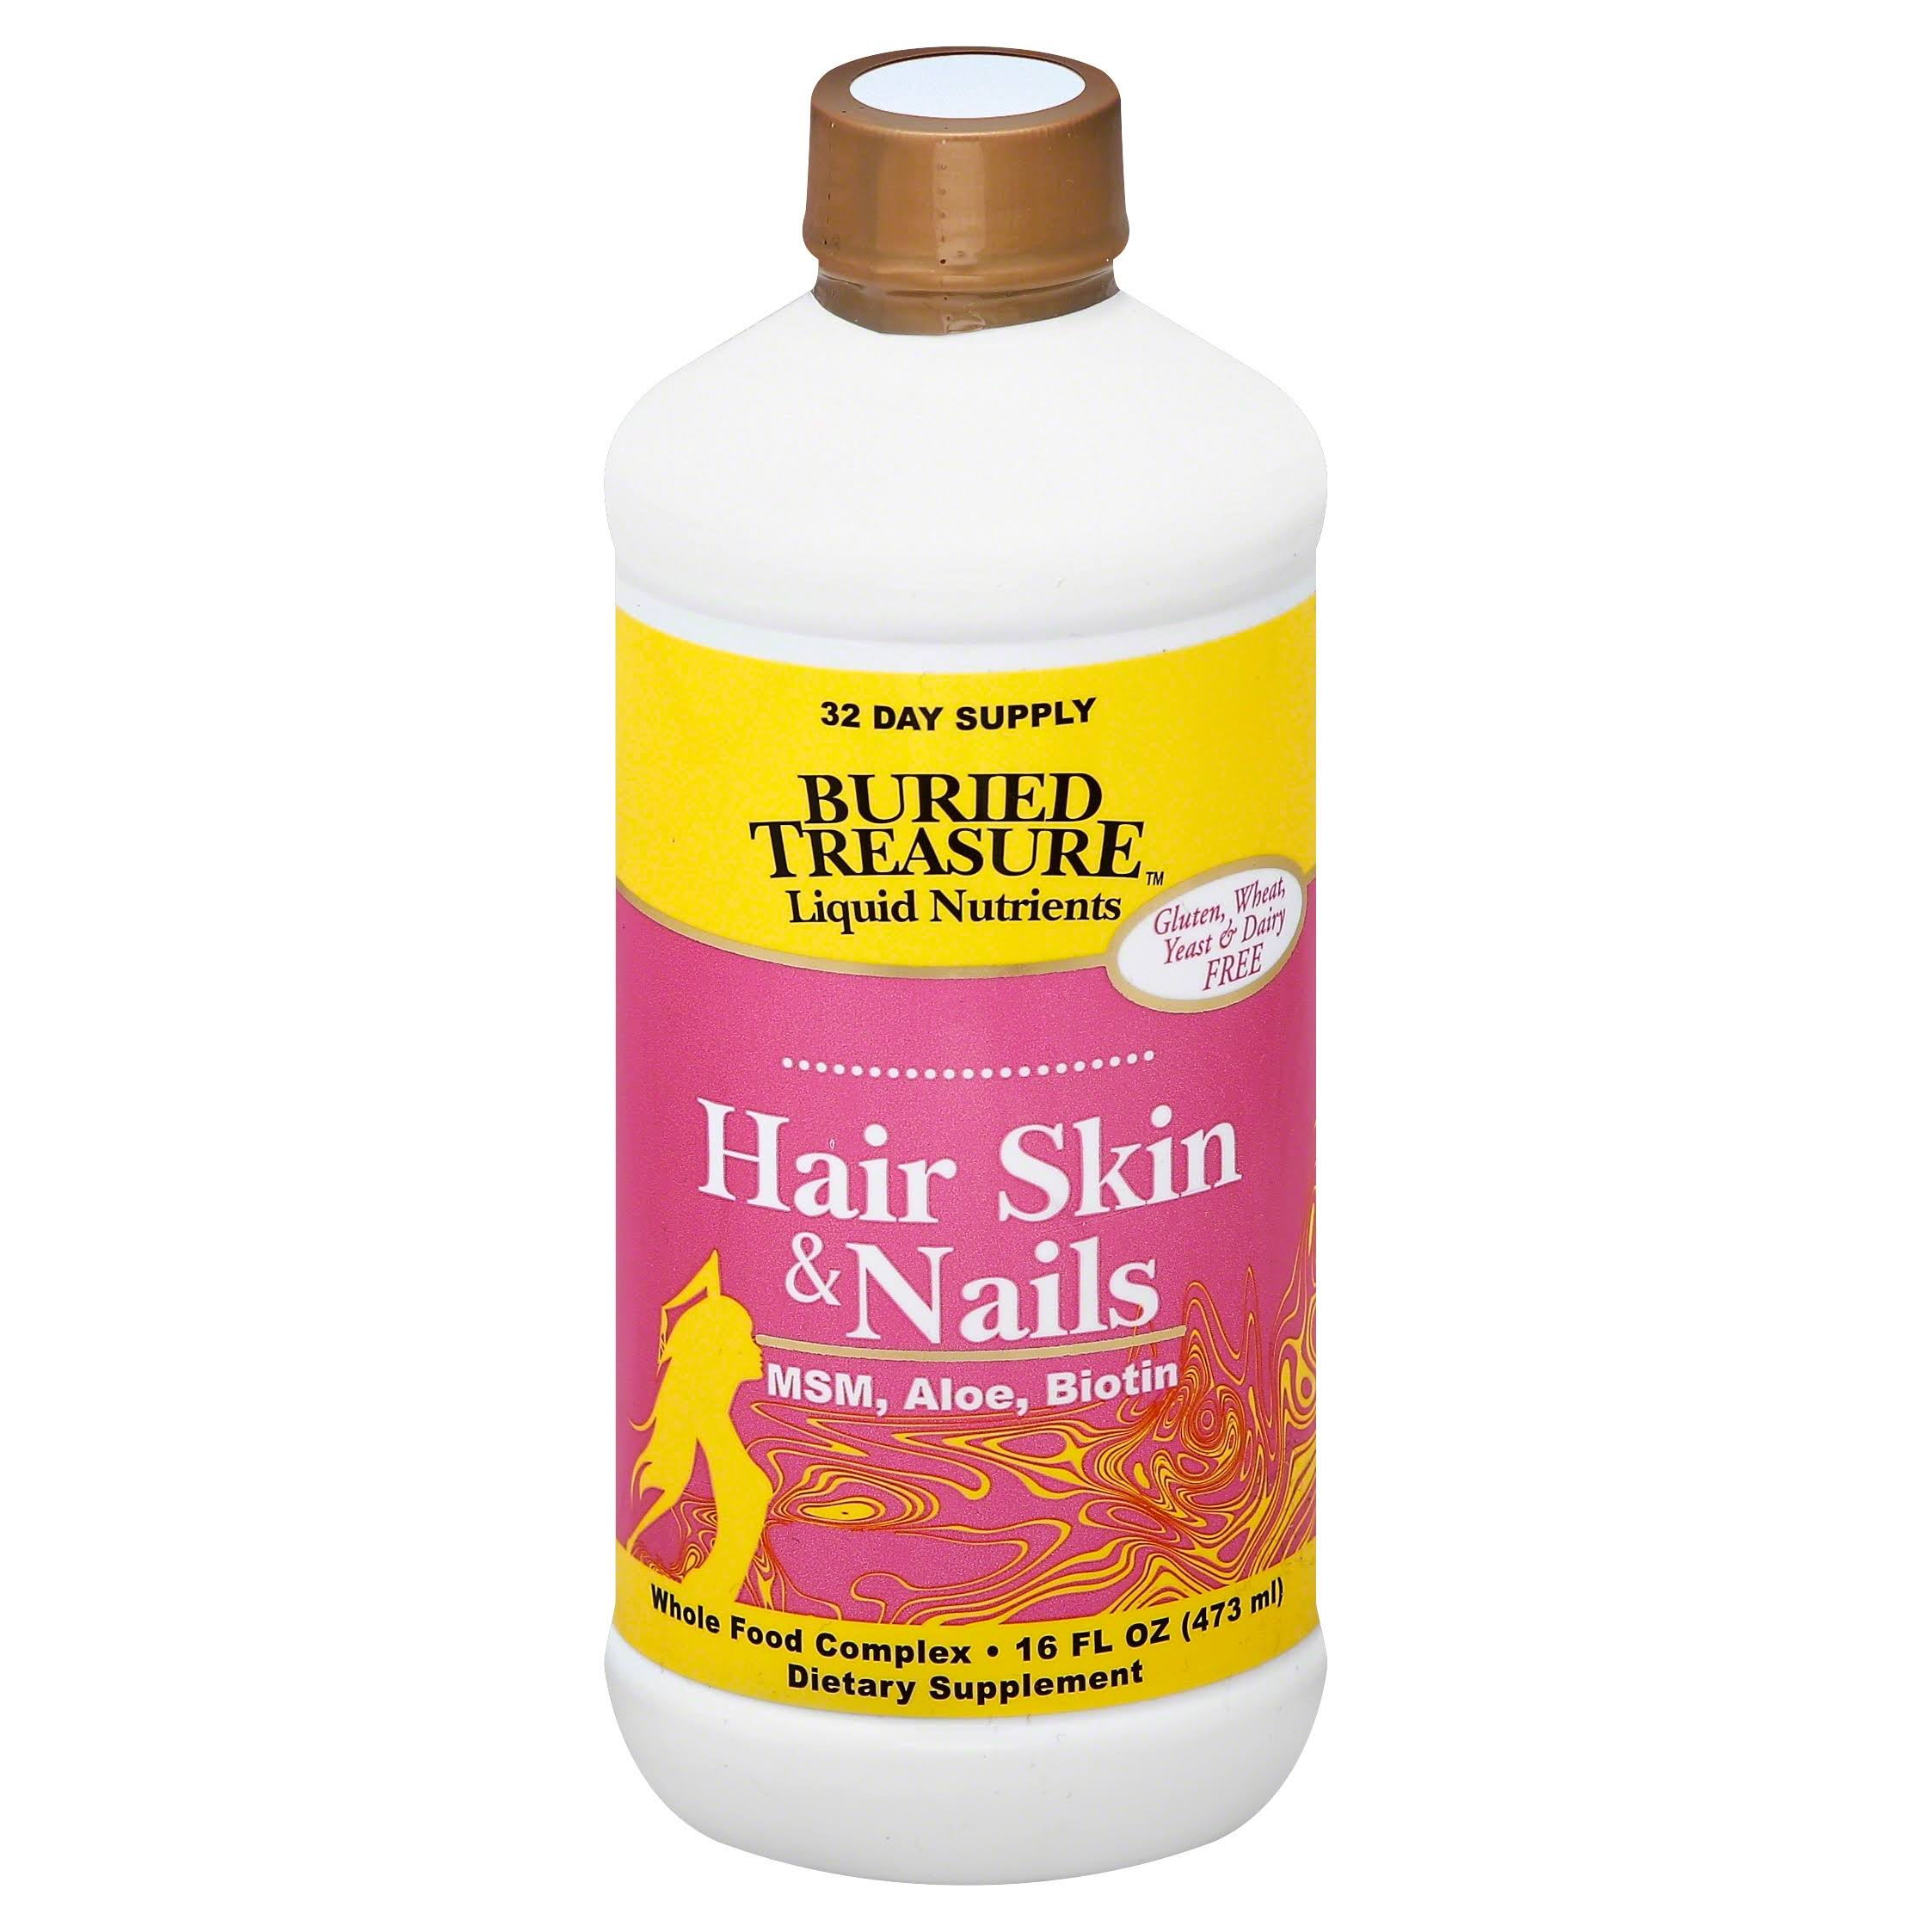 Buried Treasure Hair Skin and Nails Dietary Supplement - 16oz